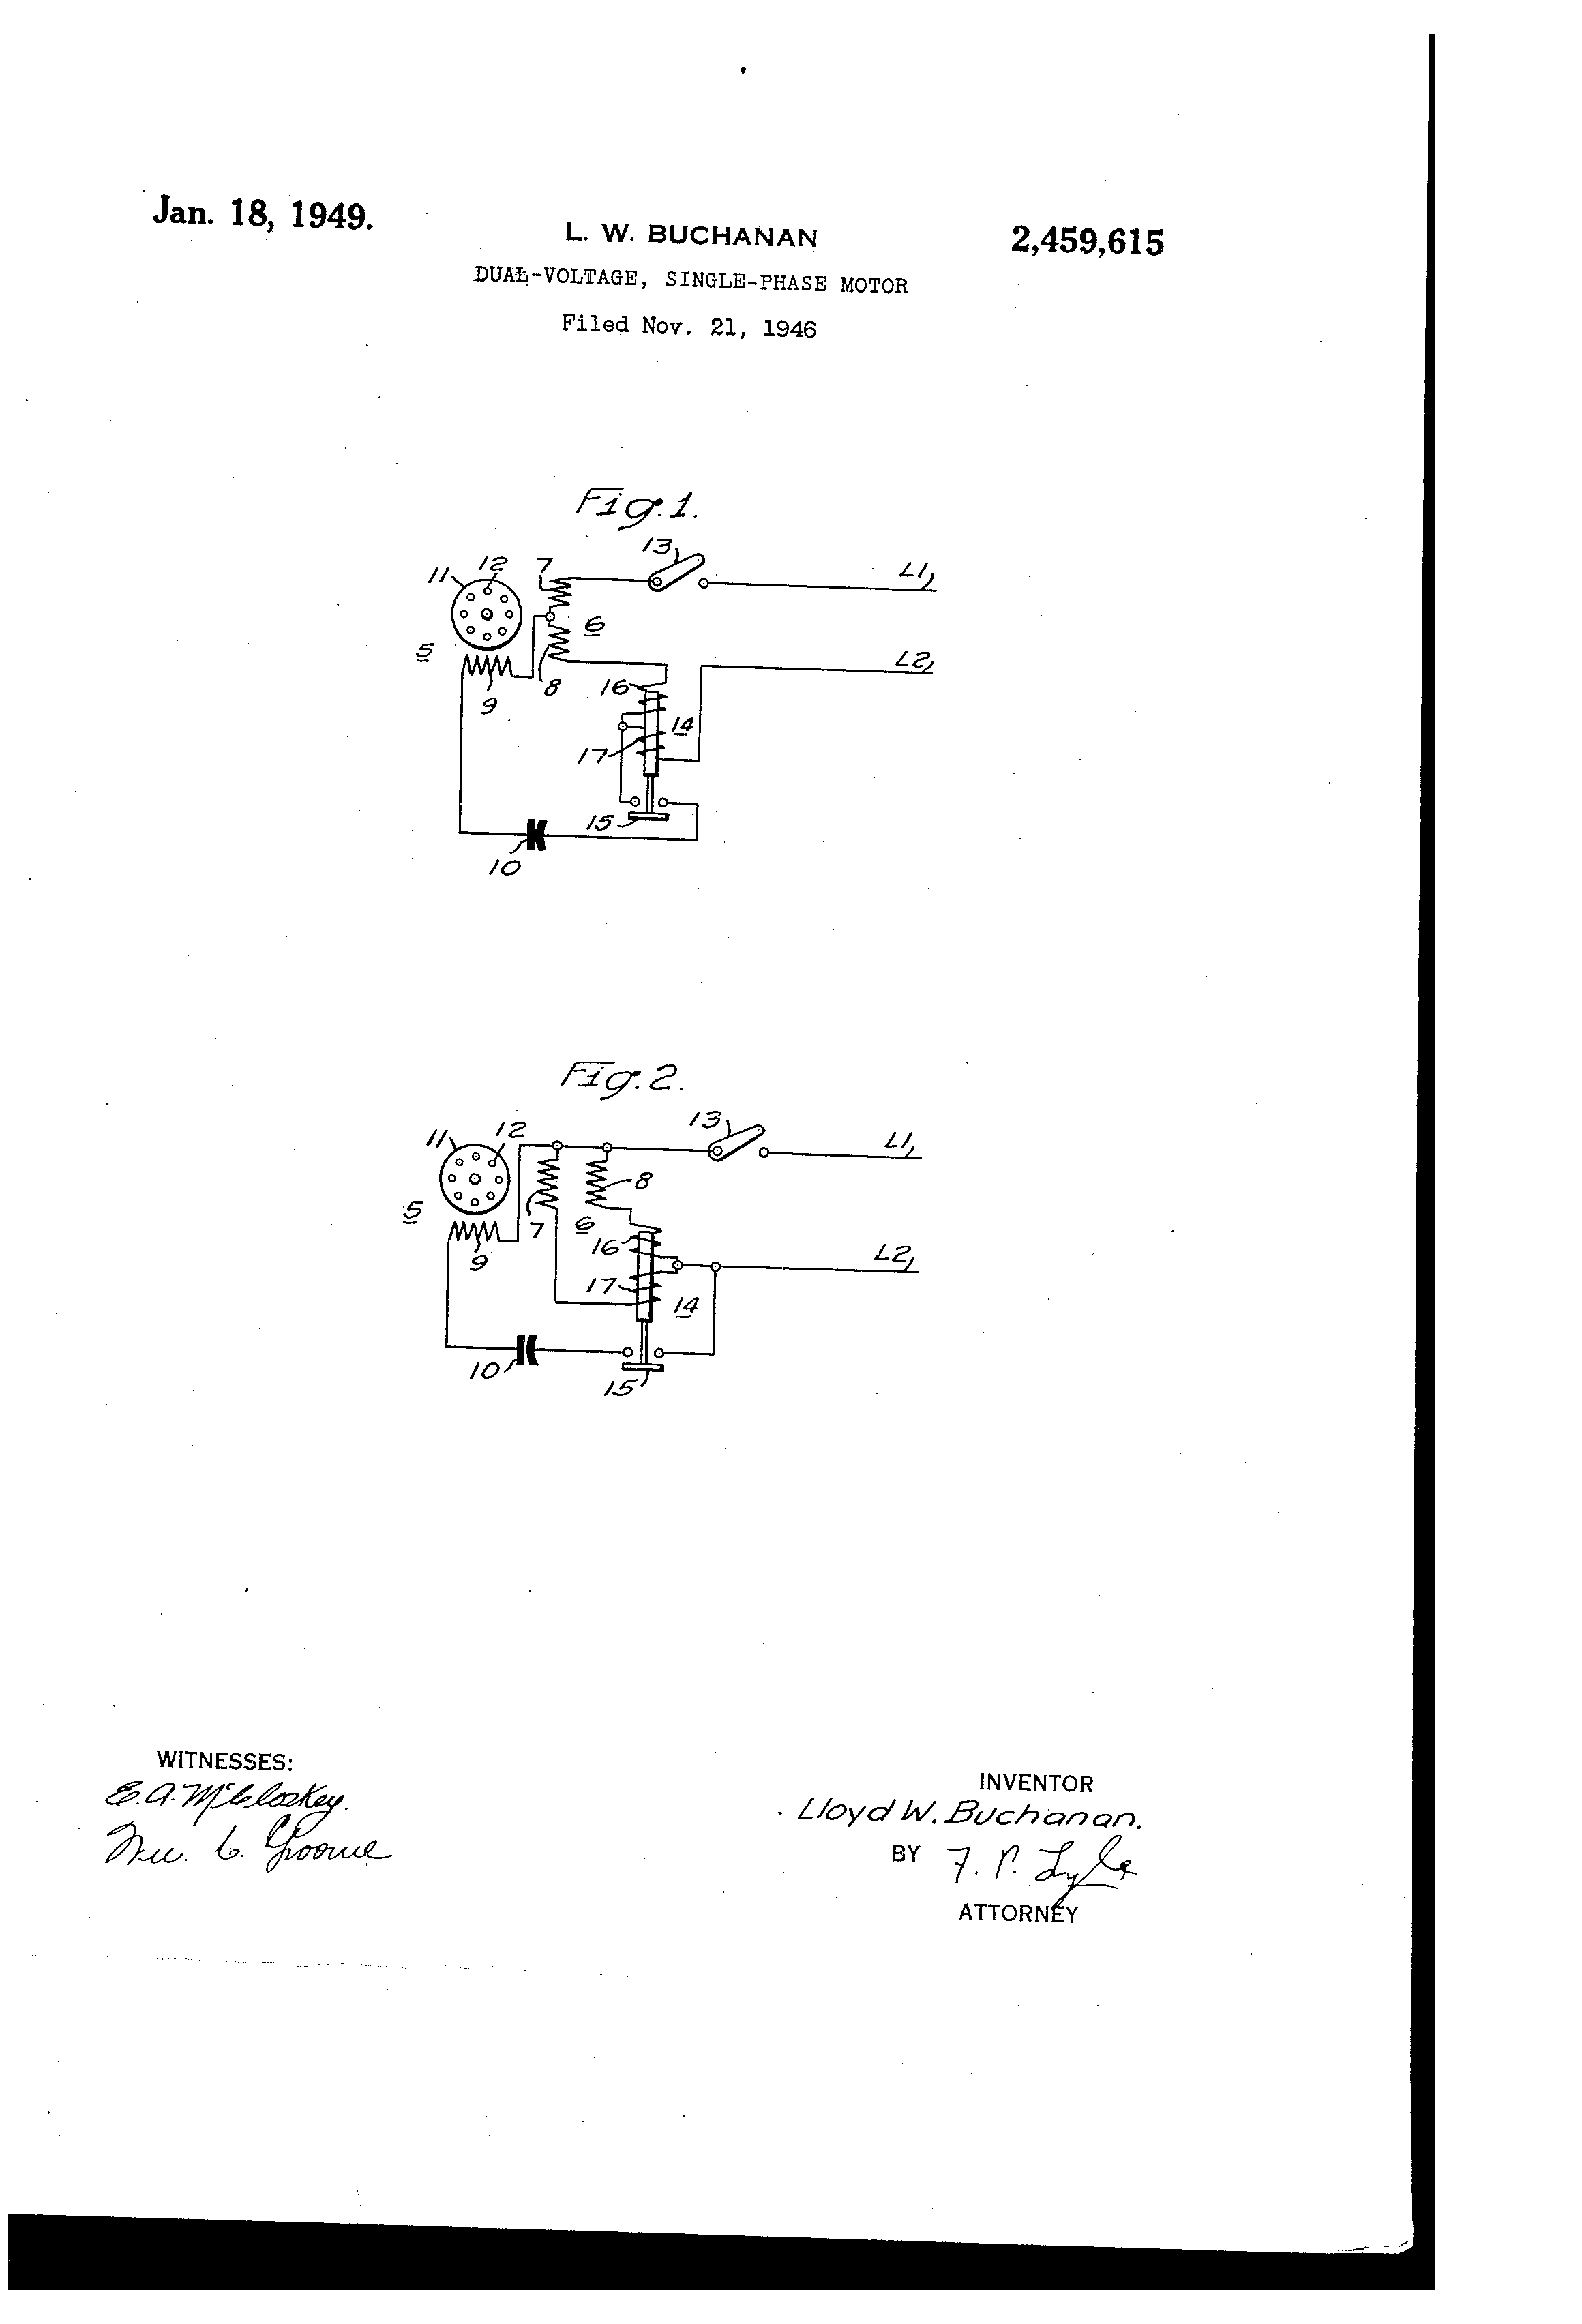 dual voltage single phase motor wiring diagram dual patent us2459615 dual voltage single phase motor google patents on dual voltage single phase motor wiring